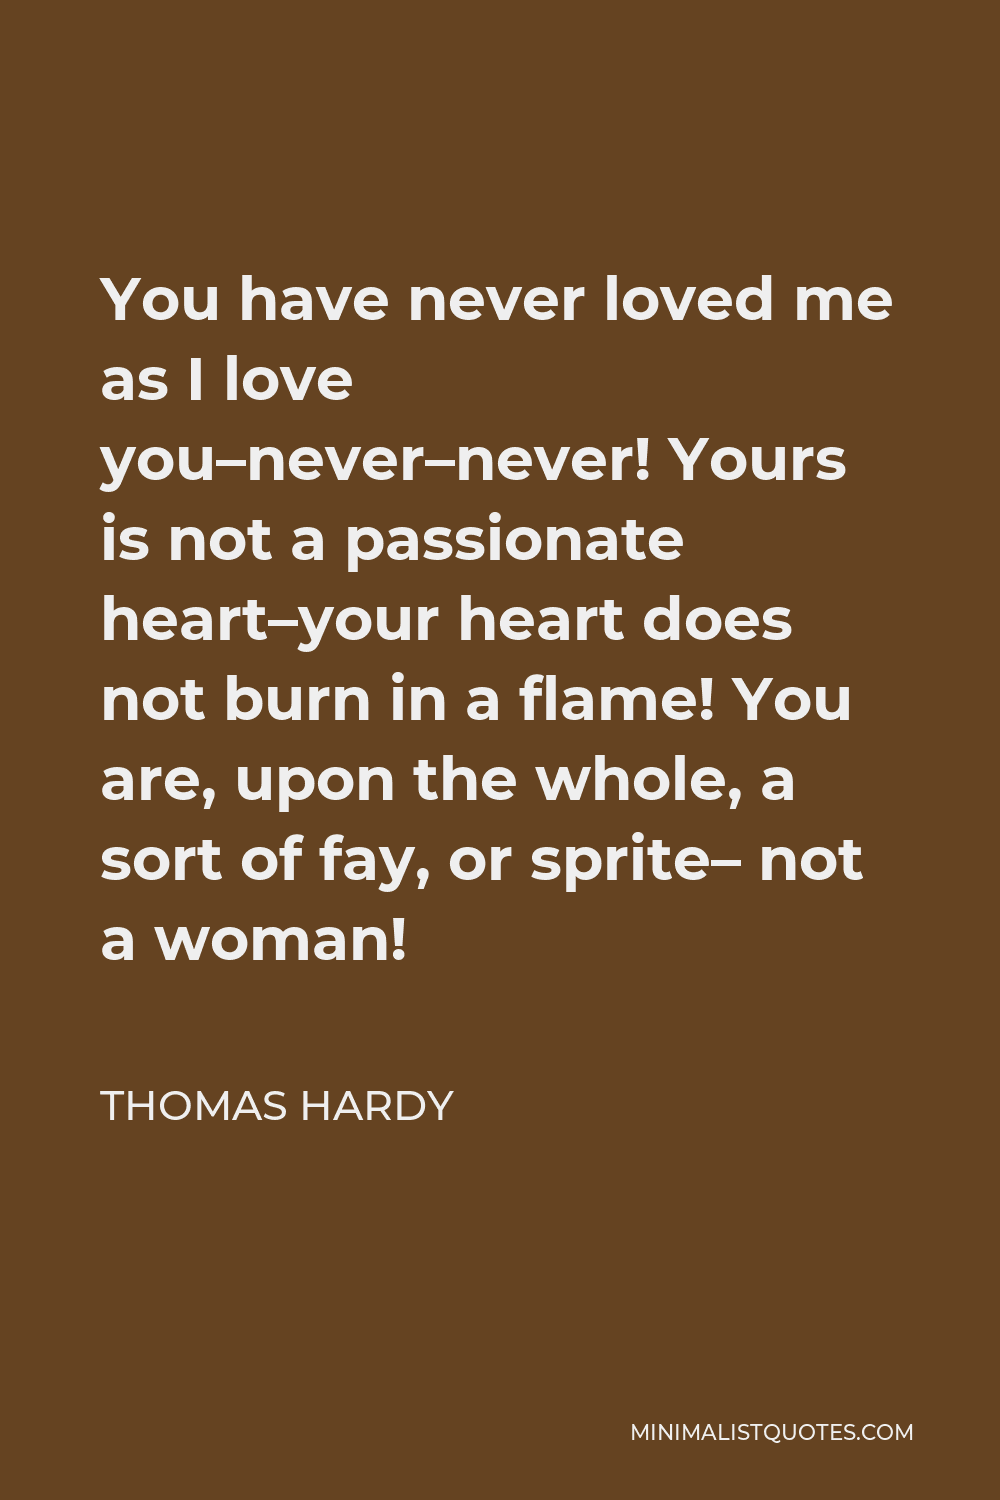 Thomas Hardy Quote - You have never loved me as I love you–never–never! Yours is not a passionate heart–your heart does not burn in a flame! You are, upon the whole, a sort of fay, or sprite– not a woman!